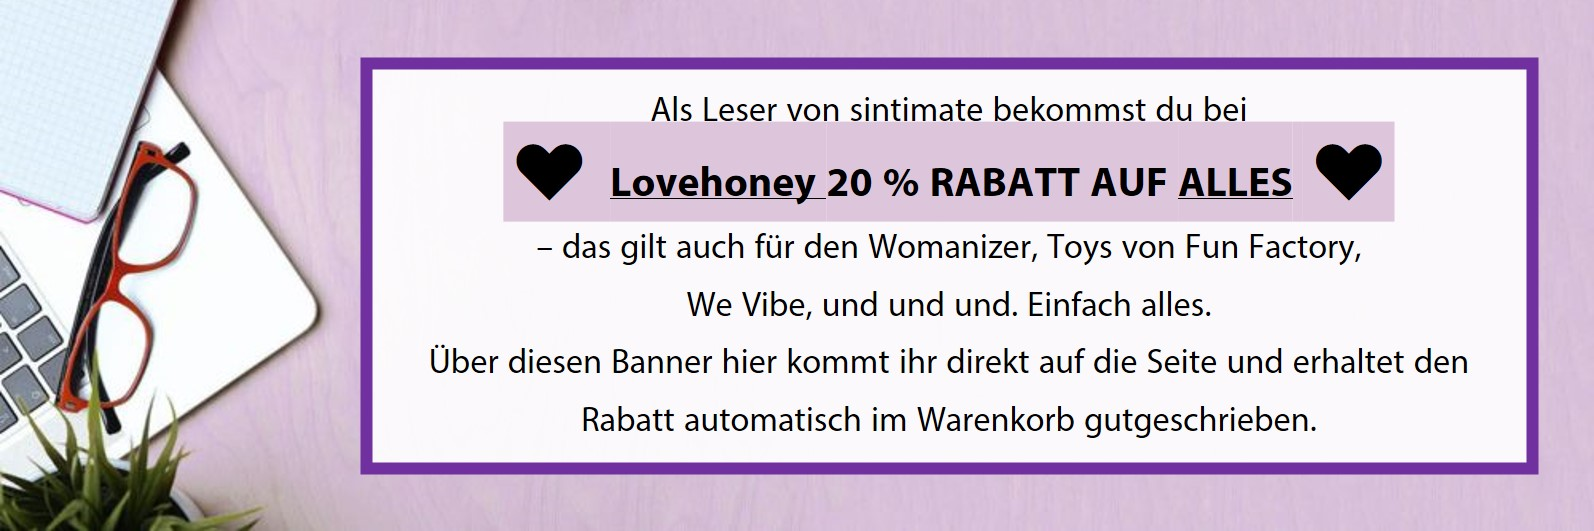 Lovehoney Gutschein, Lovehoney Rabatt